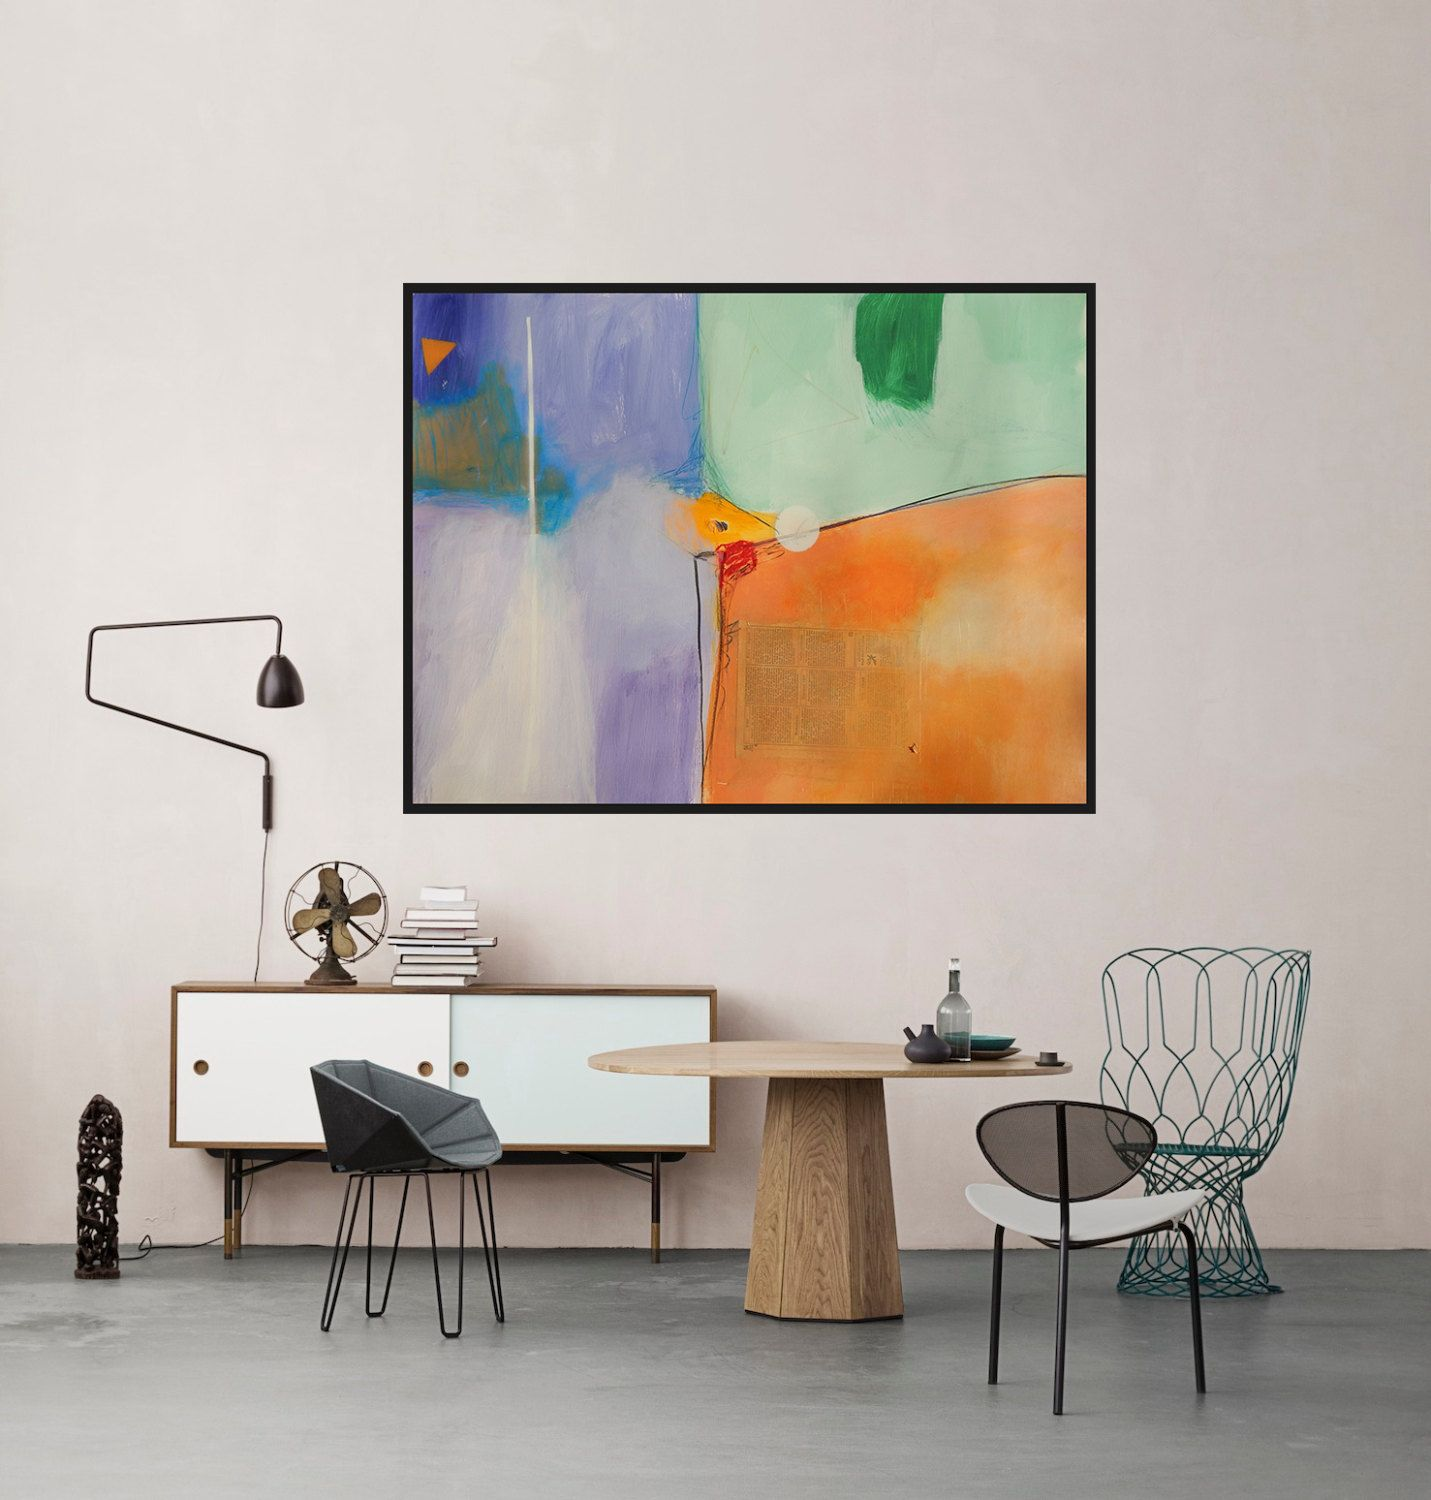 Wall art 100 x 70 - Modern Artwork Green Orange Purple White Abstract Art Big Painting Contemporary Painting Colorful Modern Wall Decor Mixed Media 100 X 70 Cm